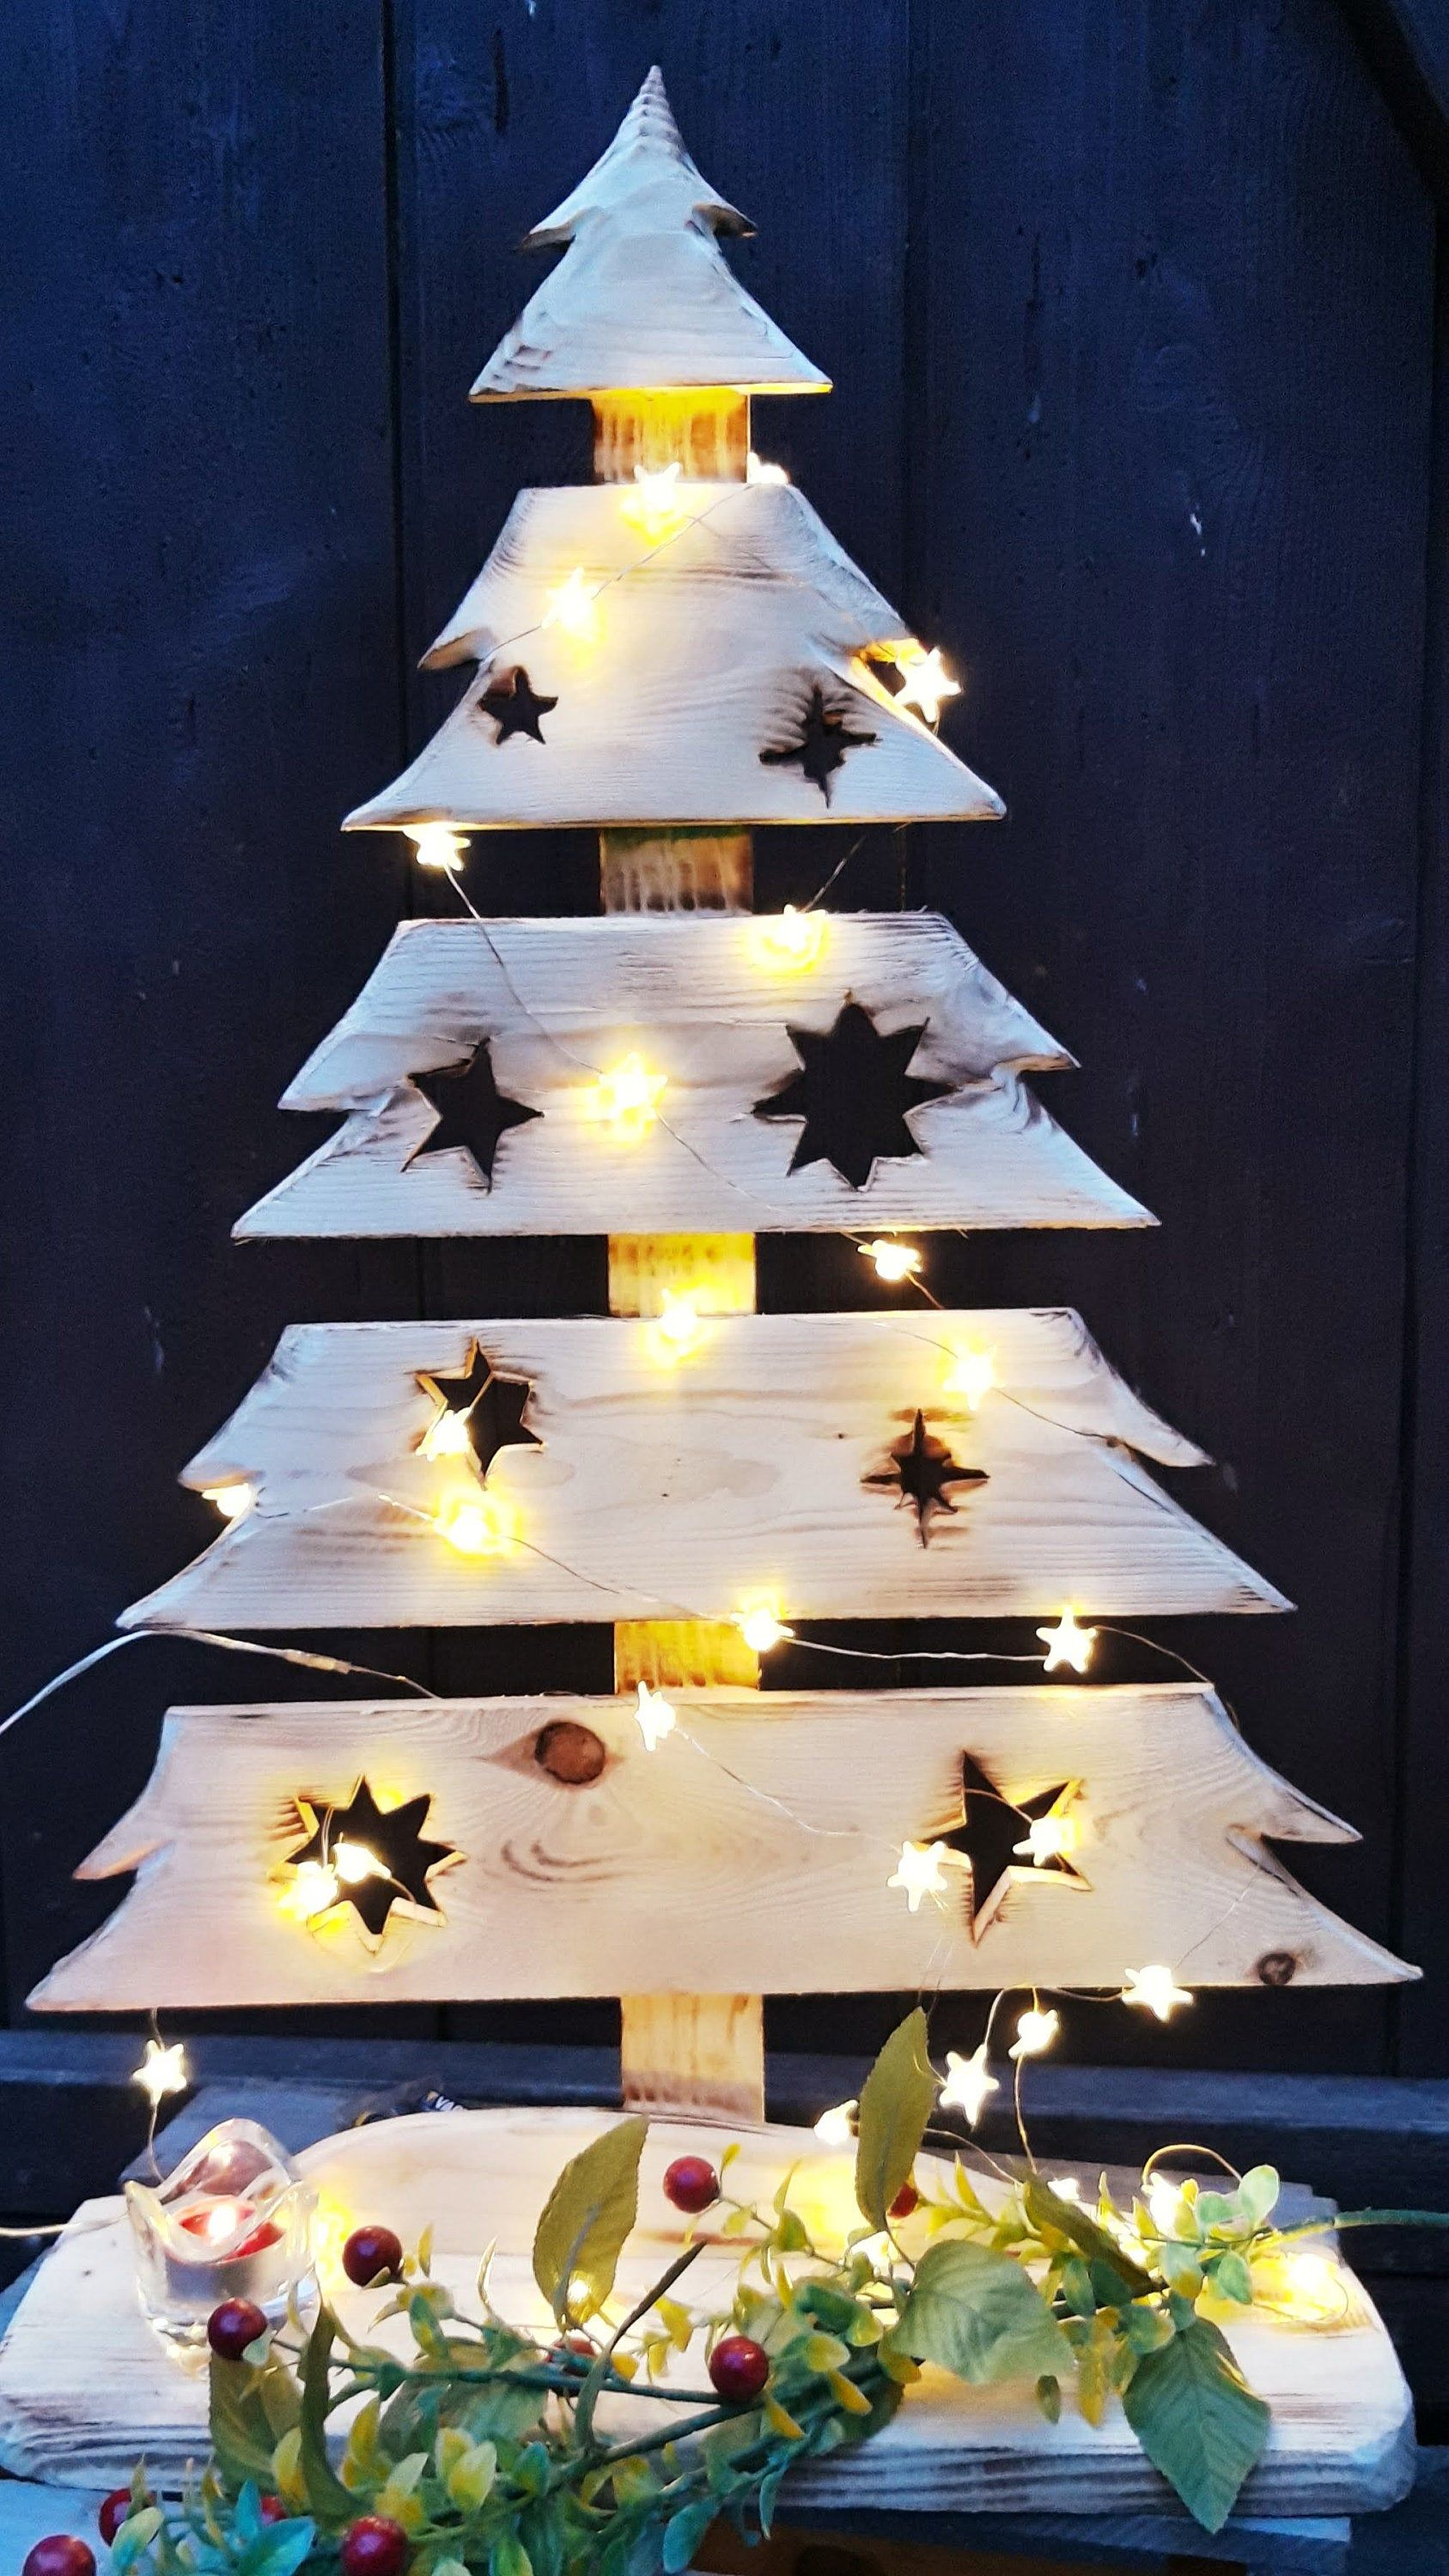 Christmas Tree Wooden Tree Advent Decoration Garden Entrance Terrace Balcony Gift Nature Or Flamed In 2020 Advent Decorations Easy Christmas Wreaths Christmas Wreaths To Make